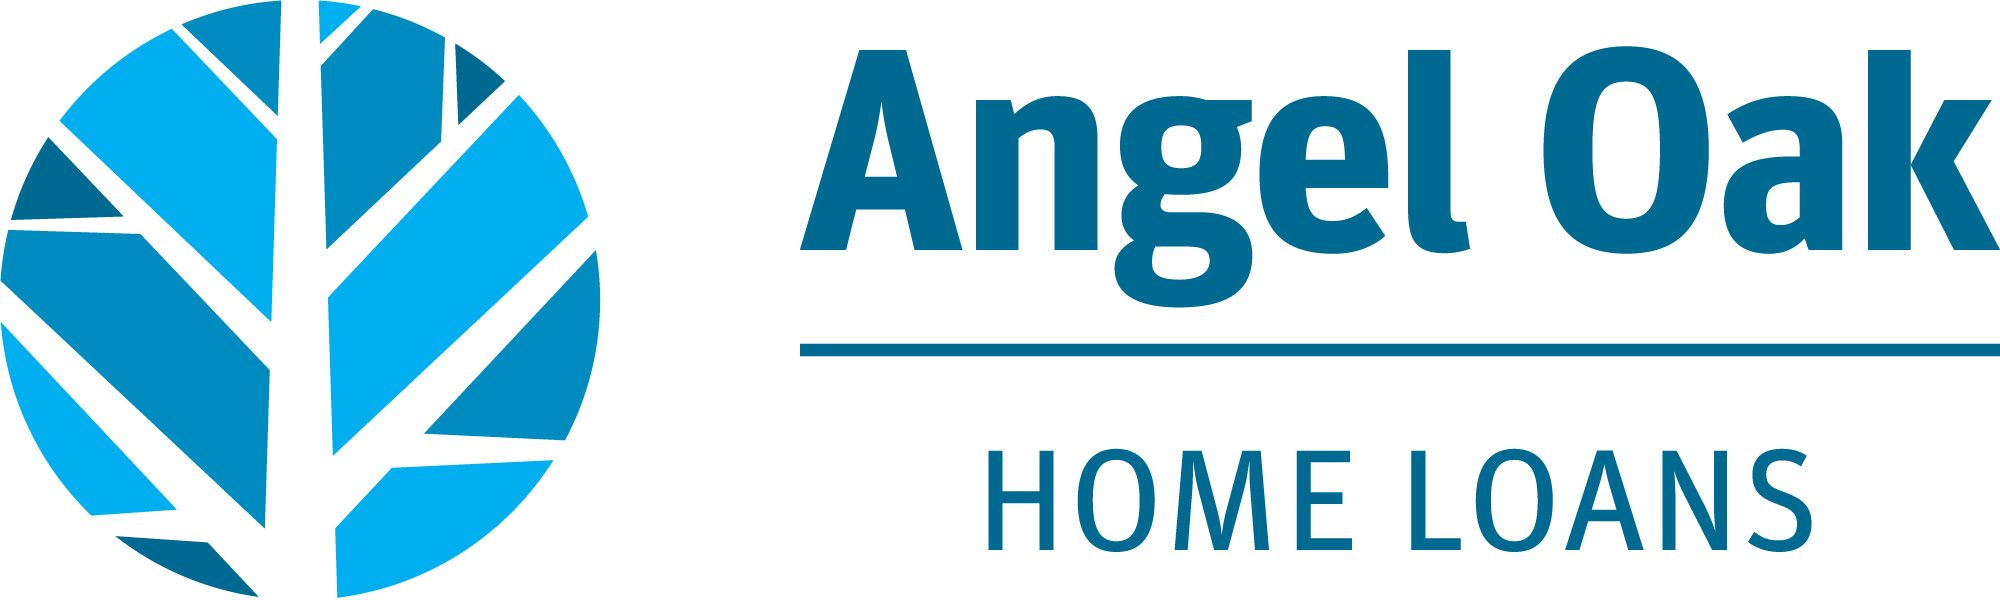 Angel Oak Home Loans Logo